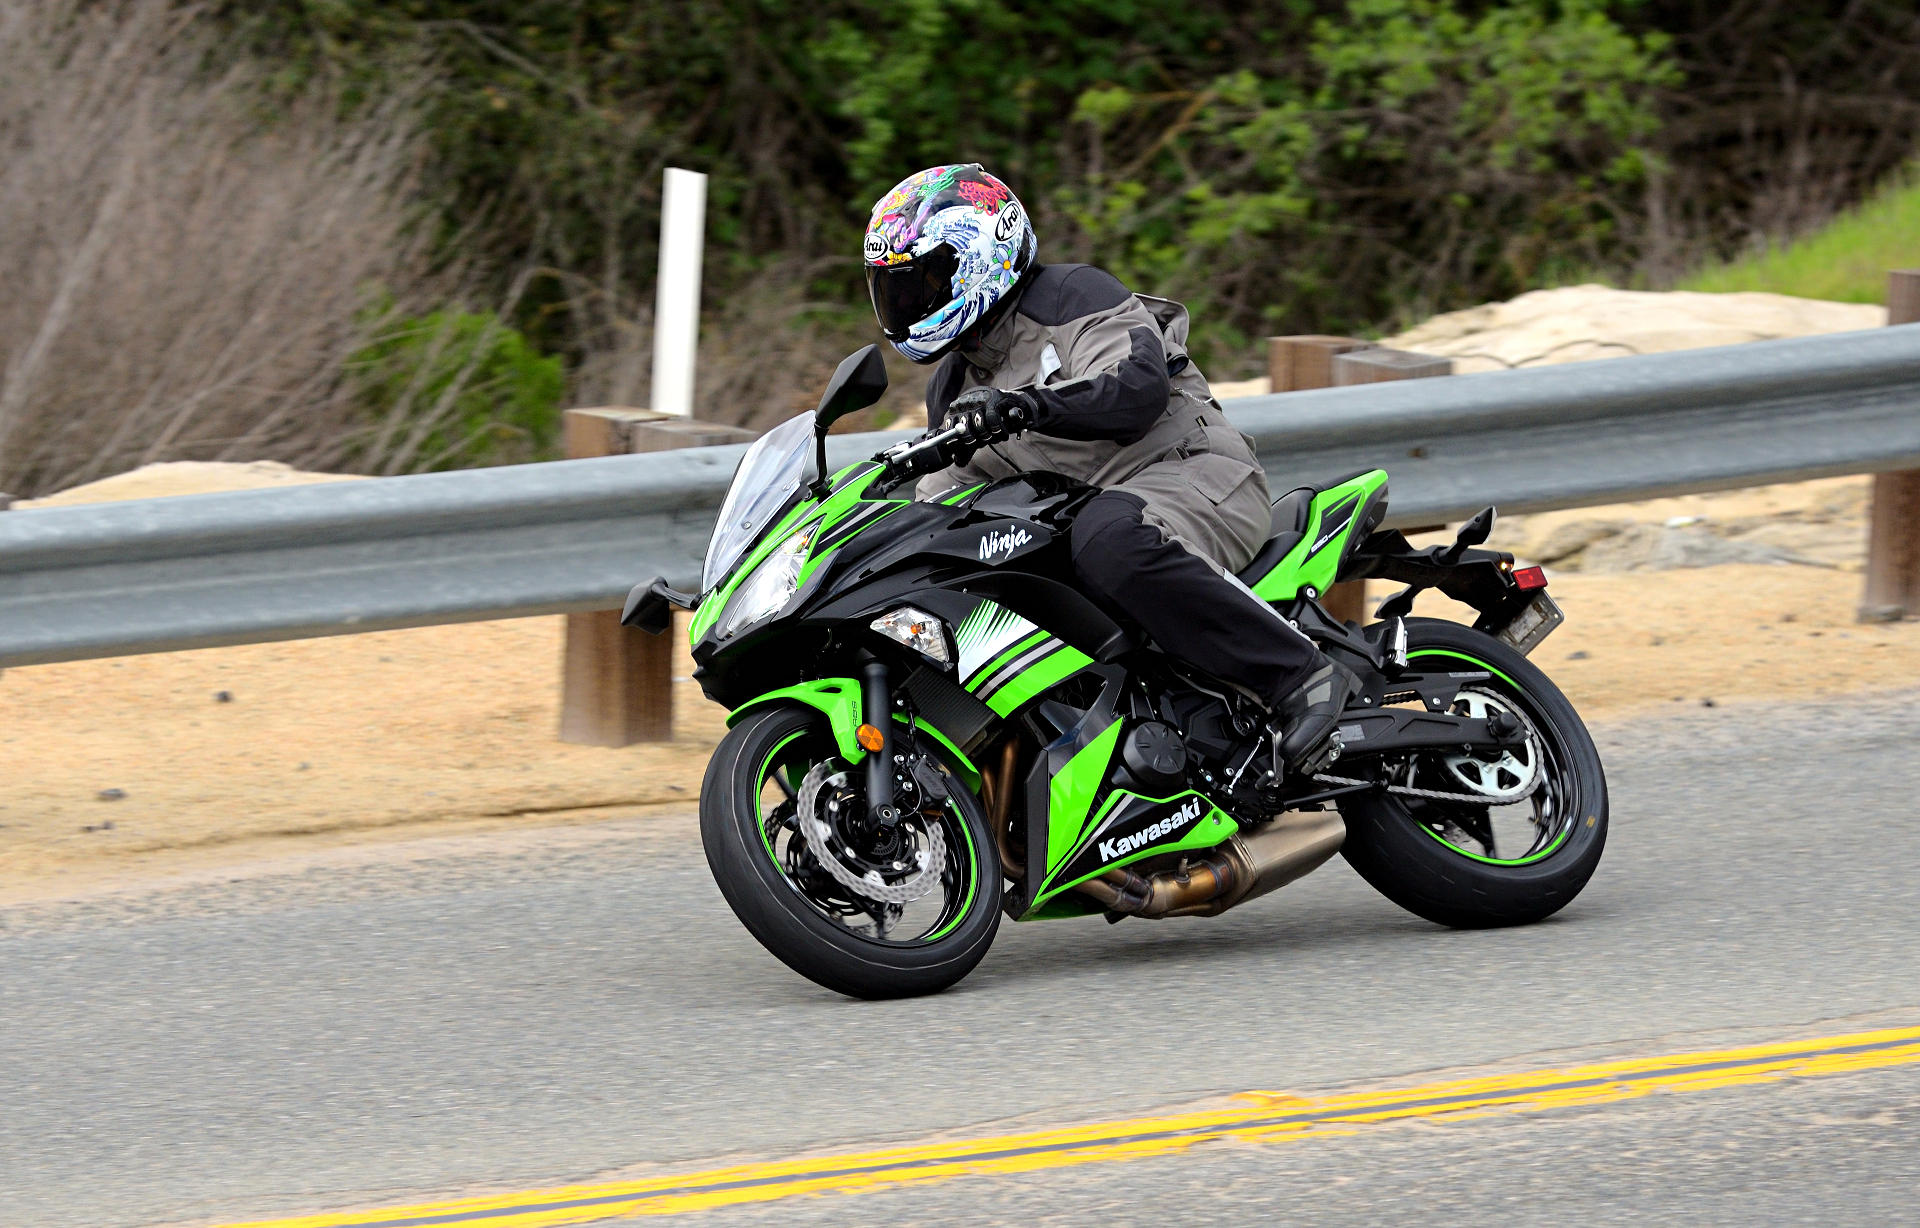 2017 Kawasaki Ninja 650 MD Ride Review